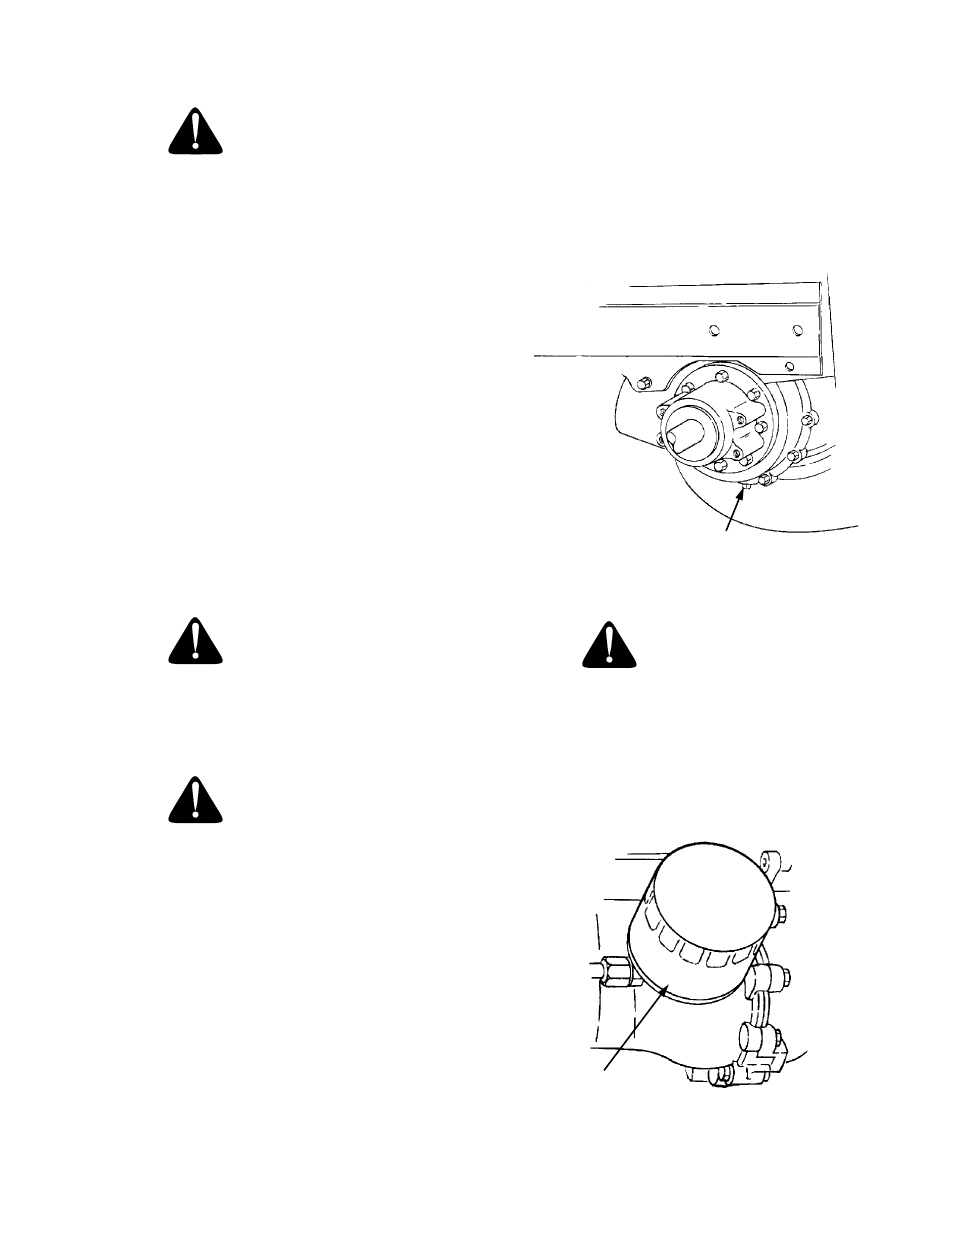 Caution | Cub Cadet LT-2180 User Manual | Page 27 / 60